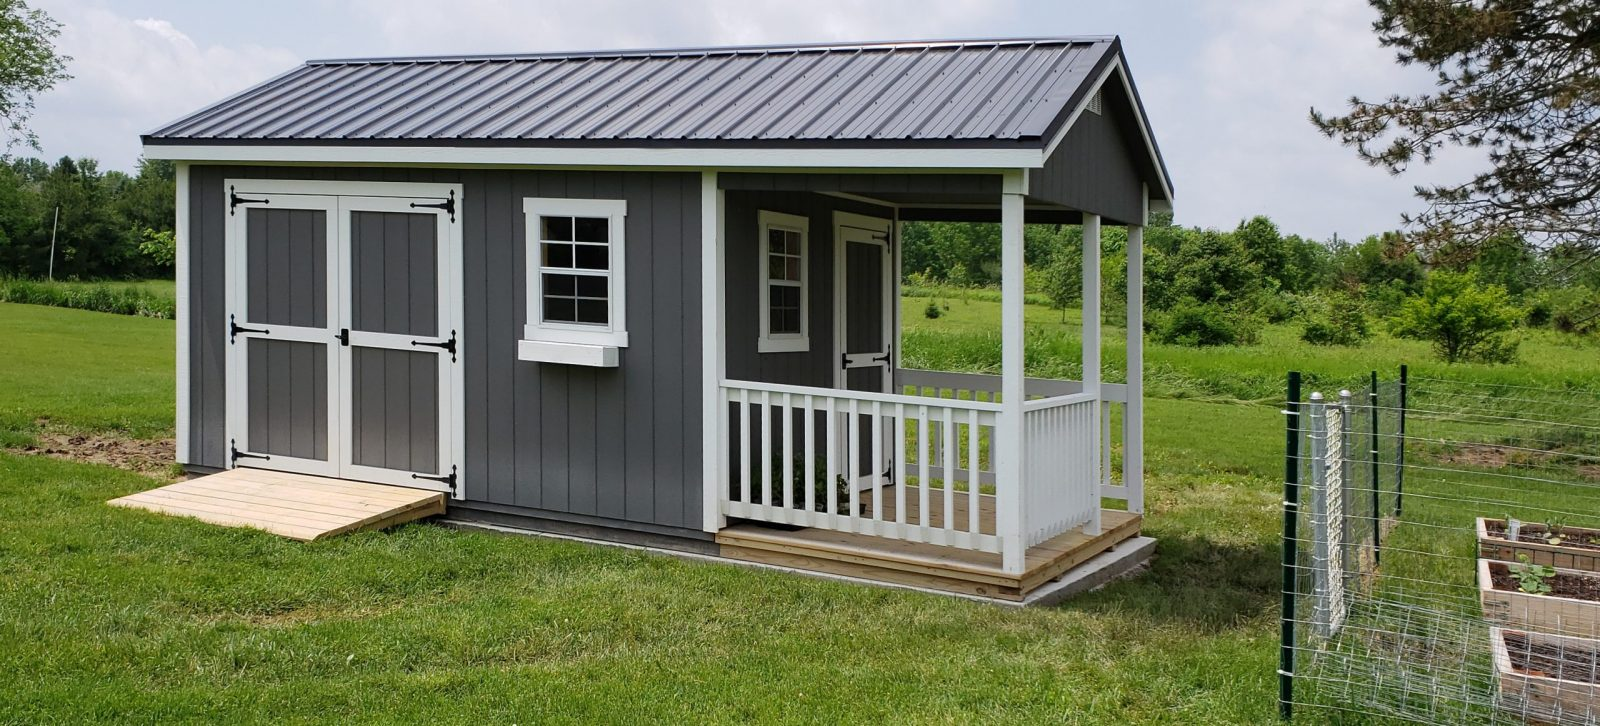 porch sheds for sale in montgomery county ohio